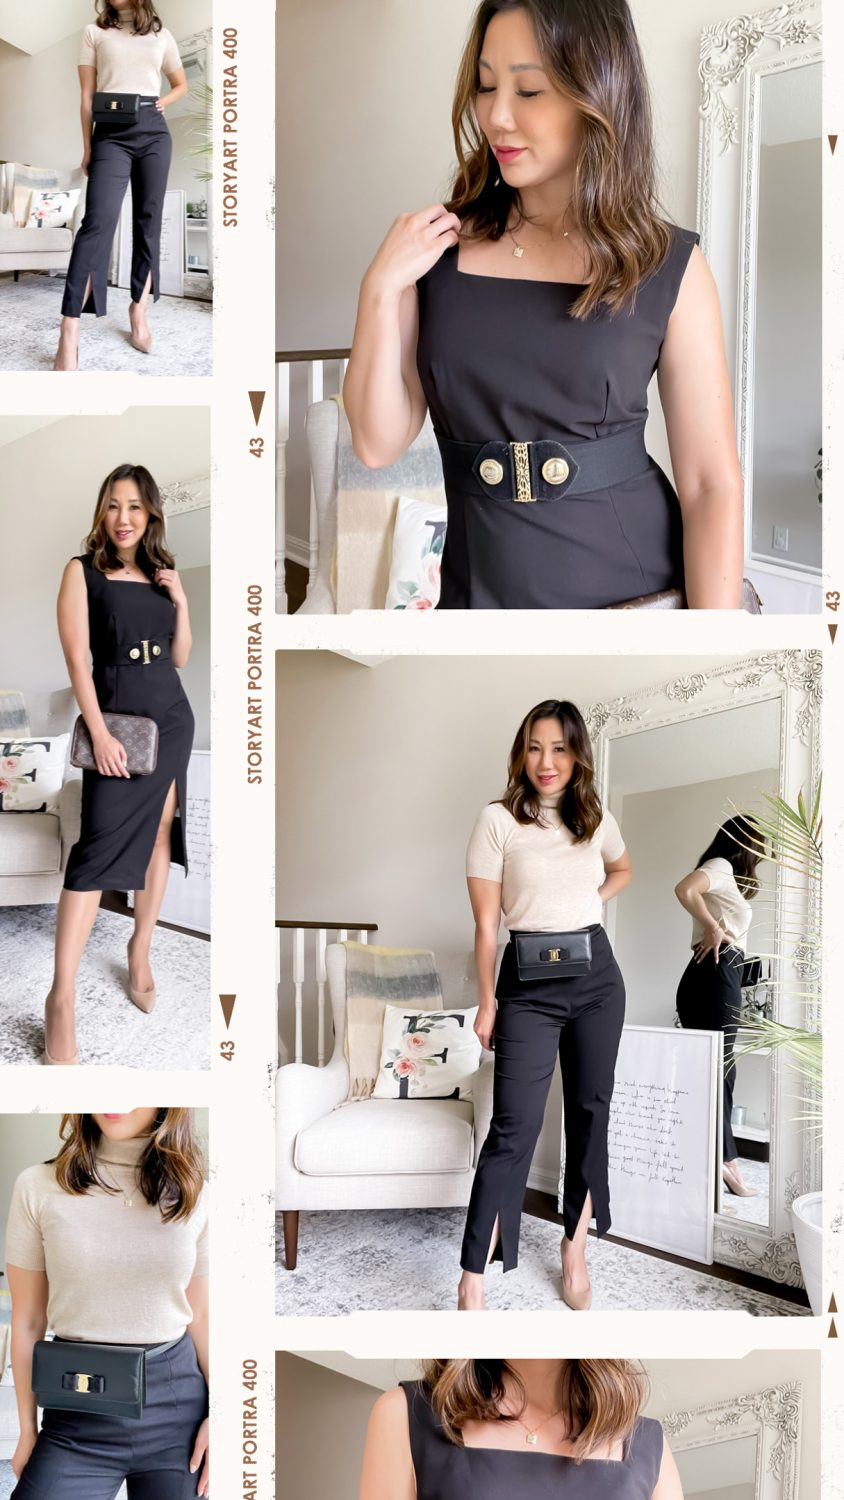 Workwear outfit ideas - new SHEIN premium MOTF review. Little black dress, knit top and black pants. Styled by Eileen Lazazzera of yesmissy.com